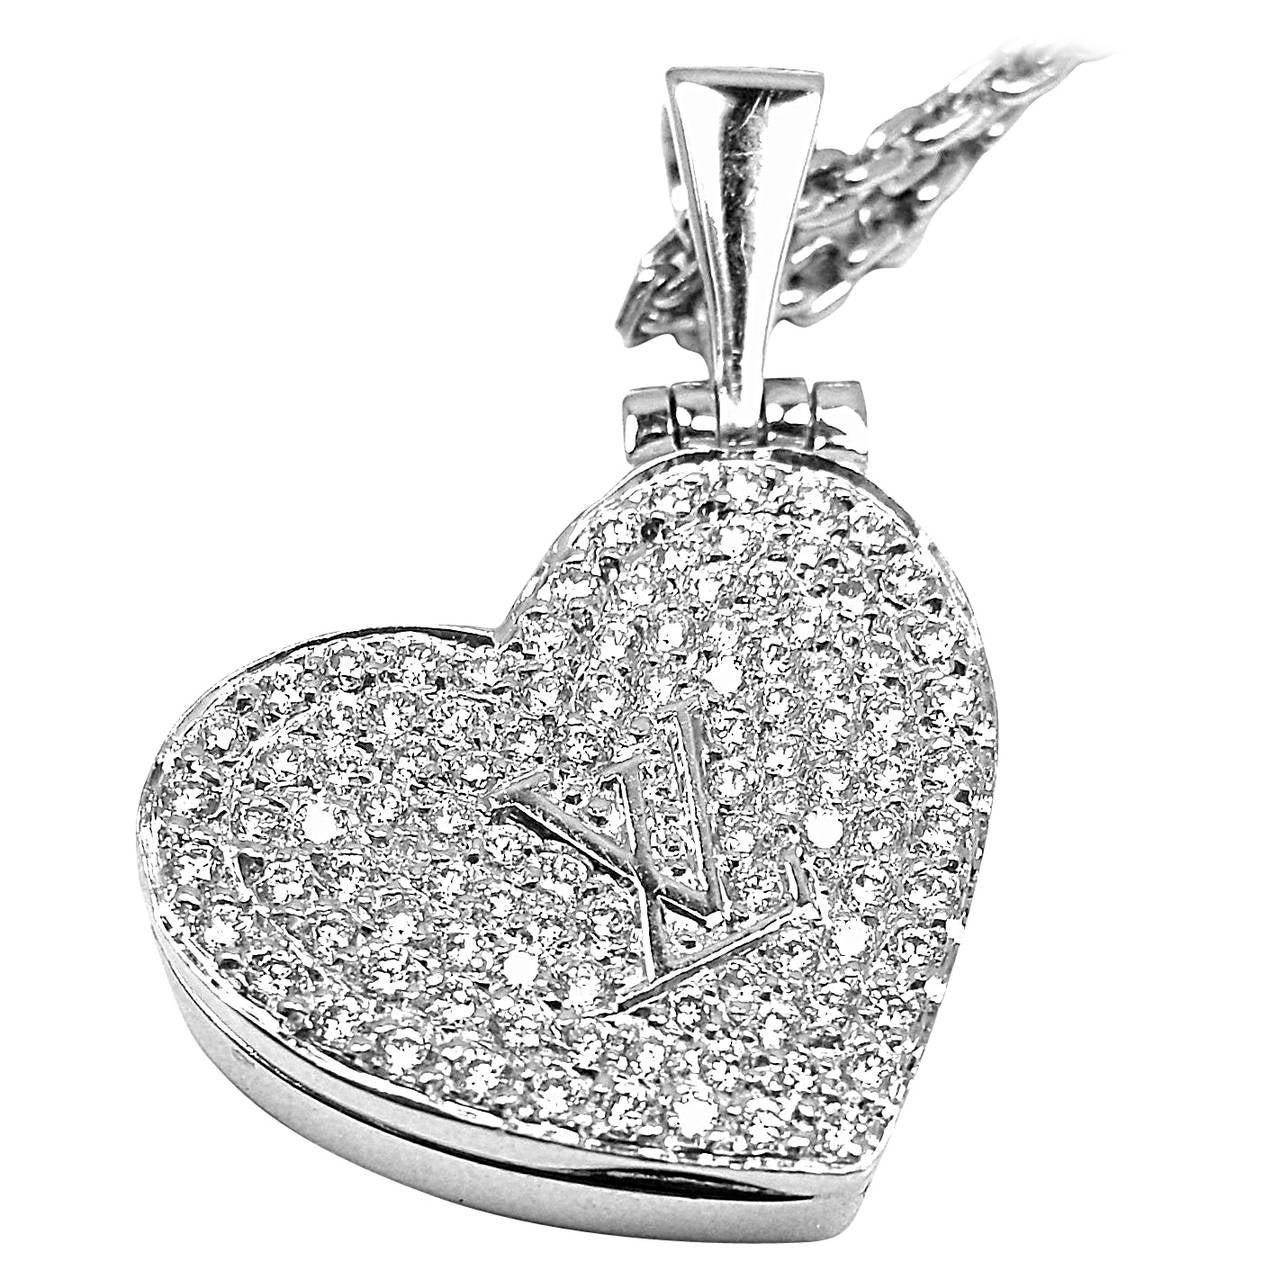 Louis vuitton diamond heart locket white gold pendant necklace at louis vuitton diamond heart locket white gold pendant necklace for sale aloadofball Choice Image